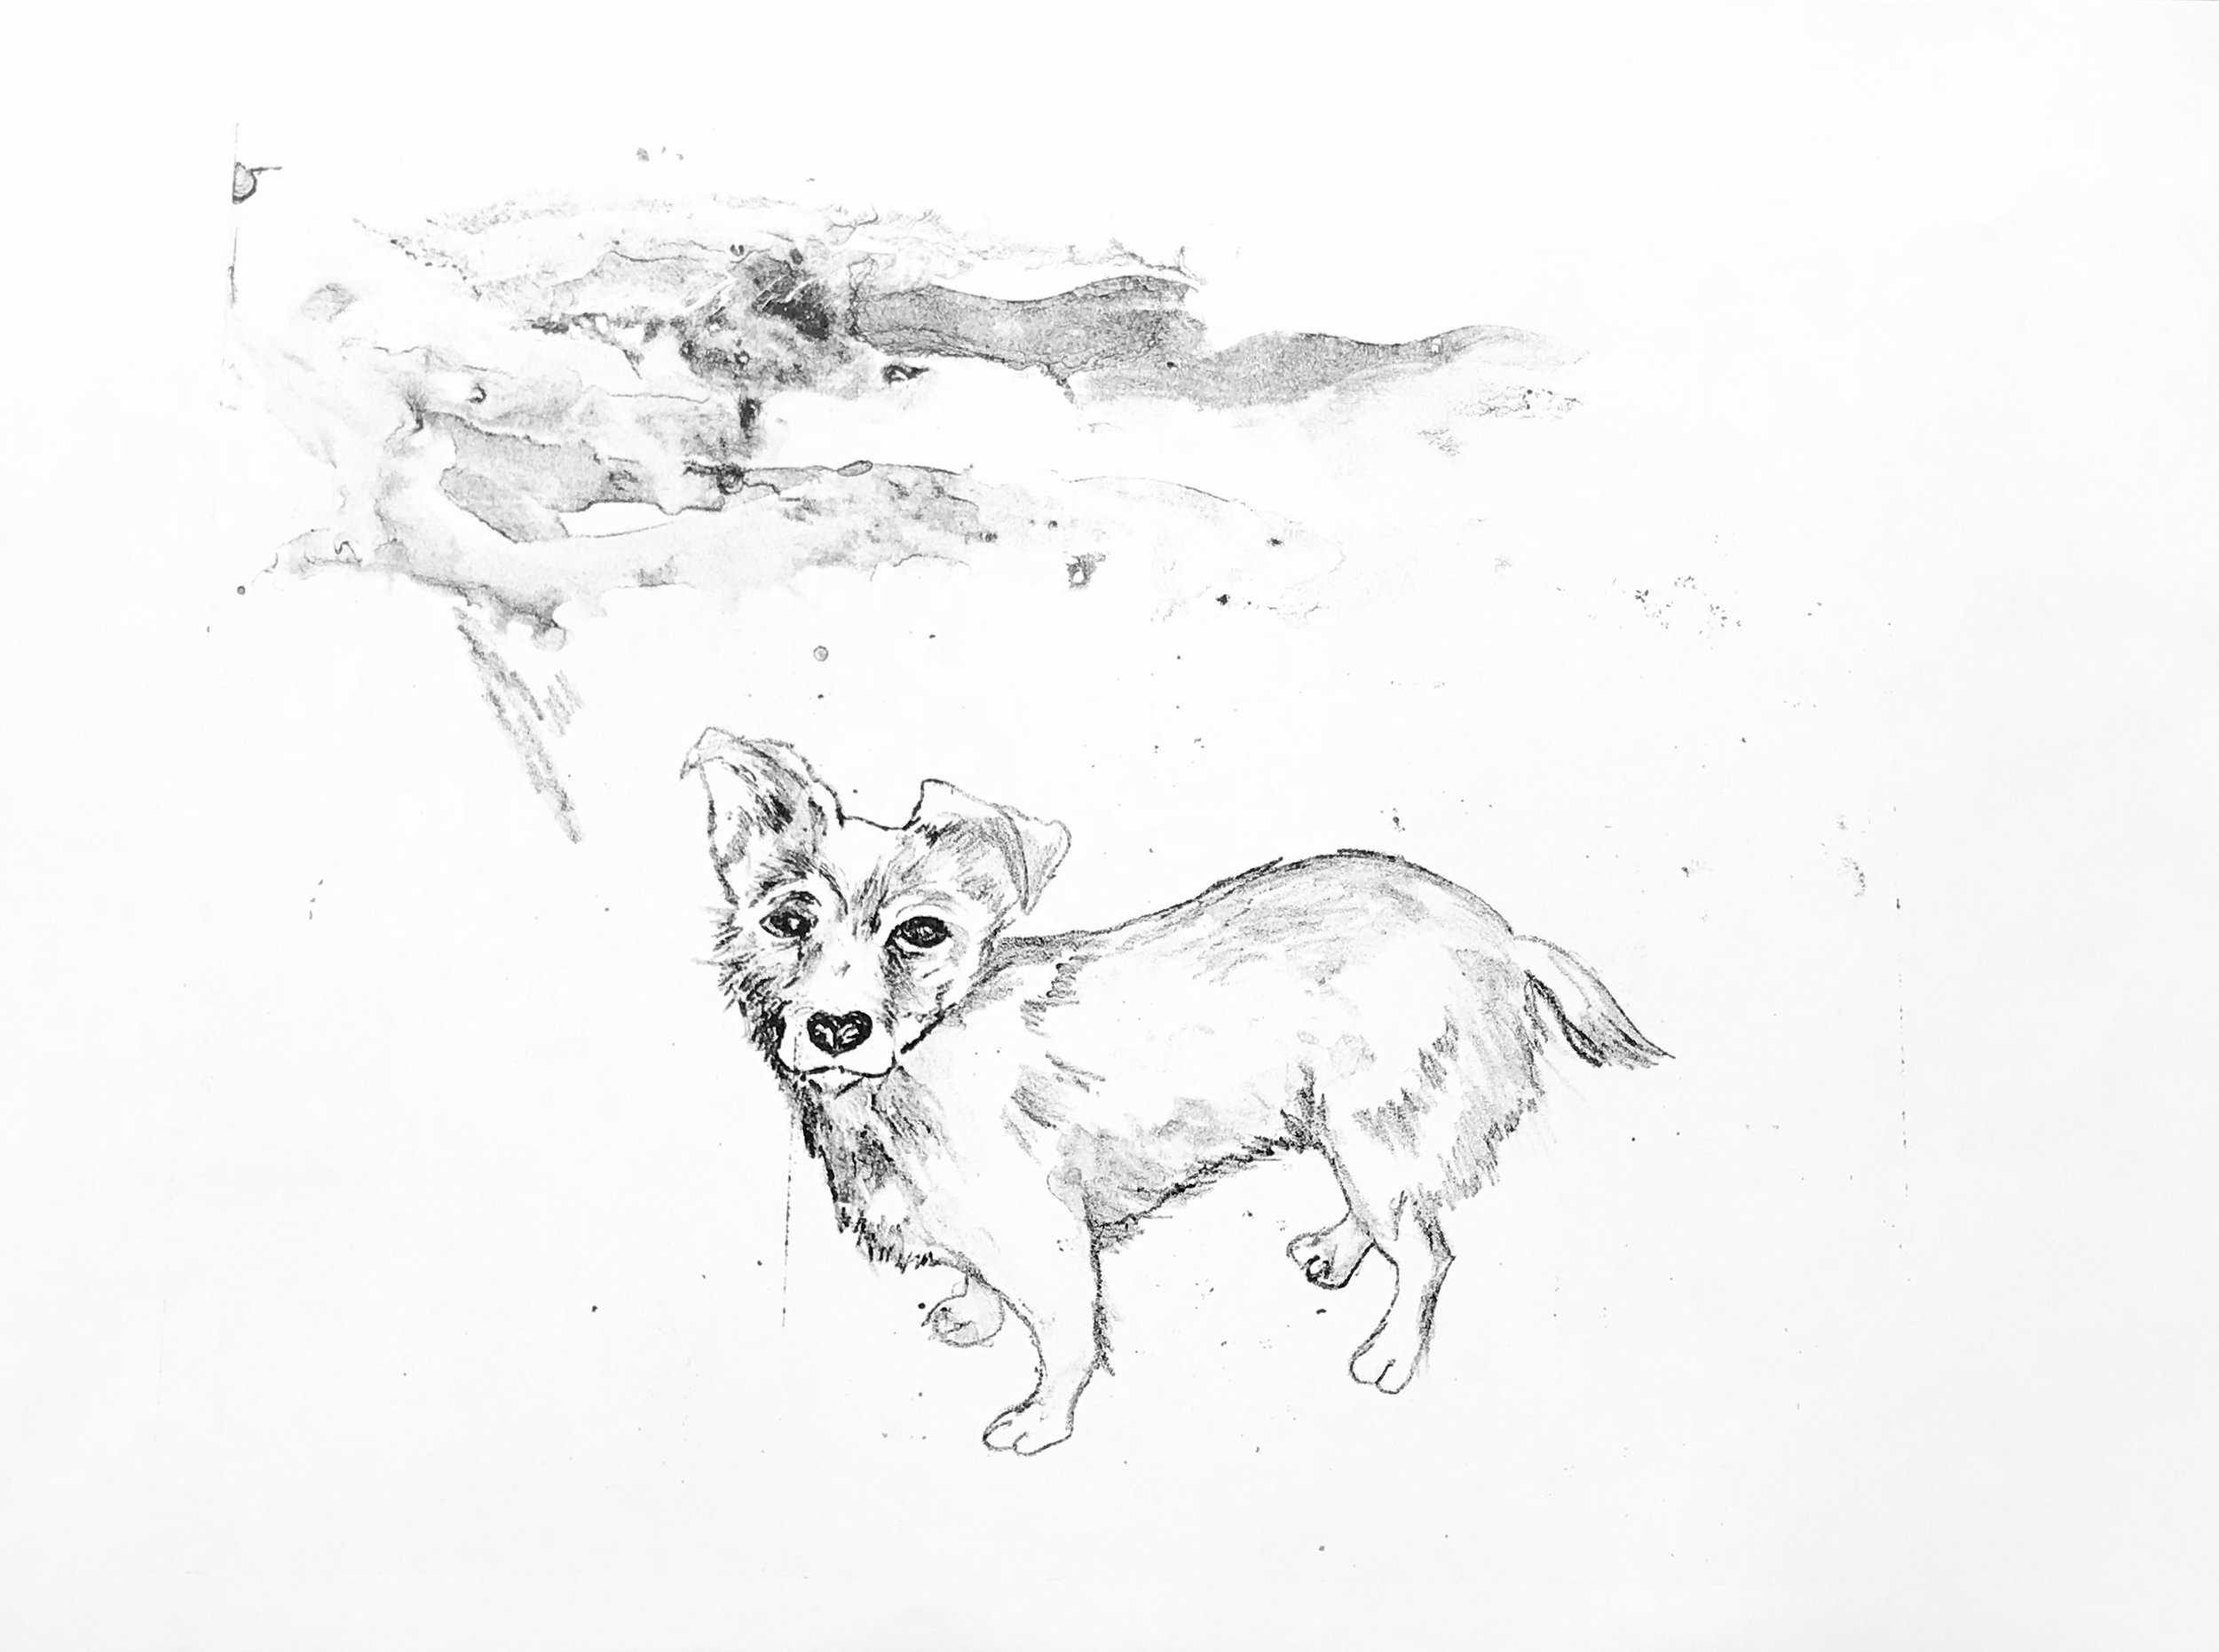 Waterless lithography work in progress by Penny Brewhill